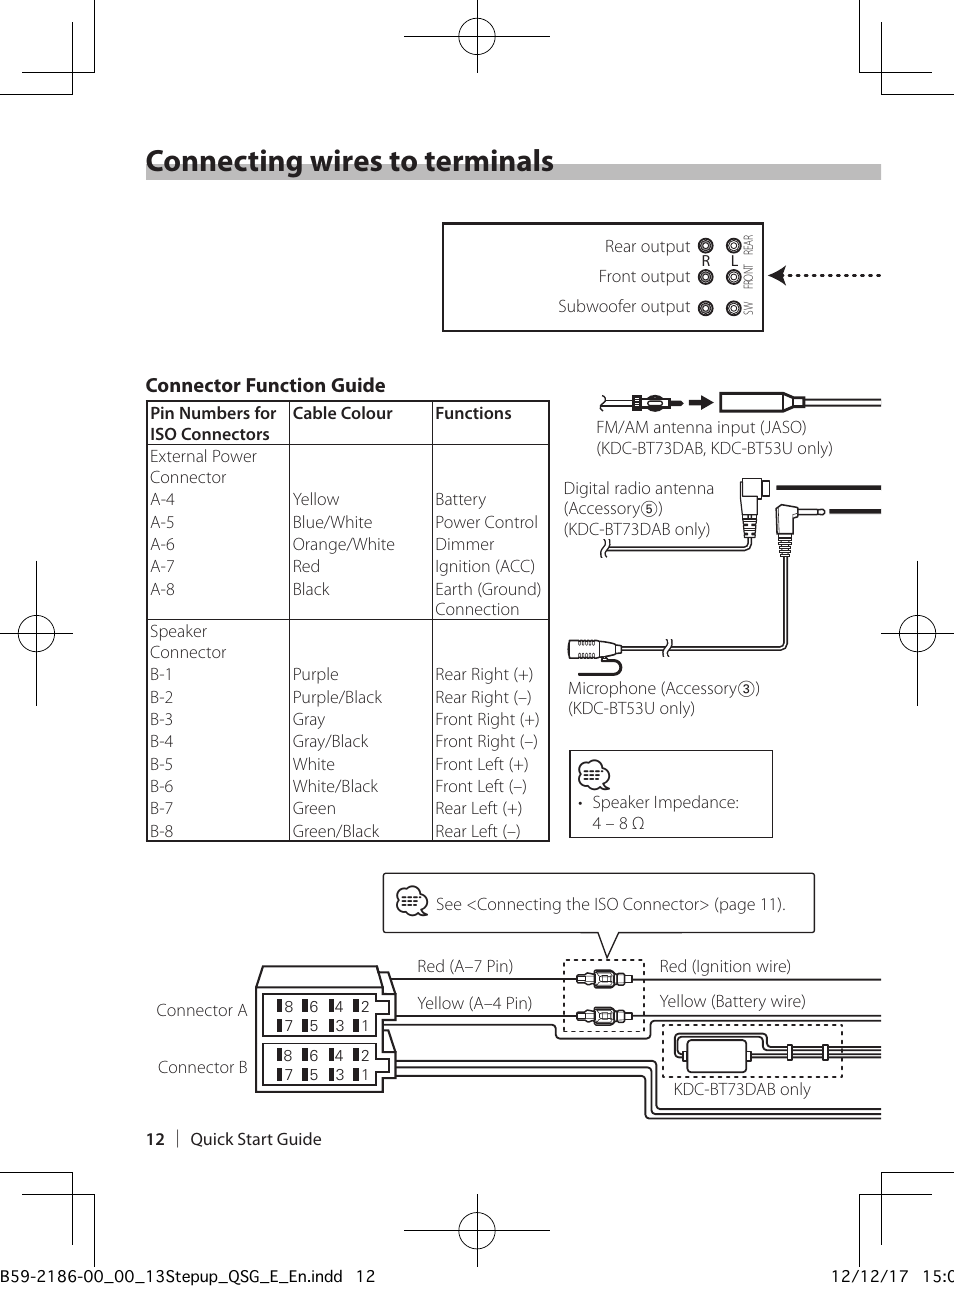 Wiring Diagram For Kenwood Kdc 252u : Connecting wires to terminals kenwood kdc bt u user